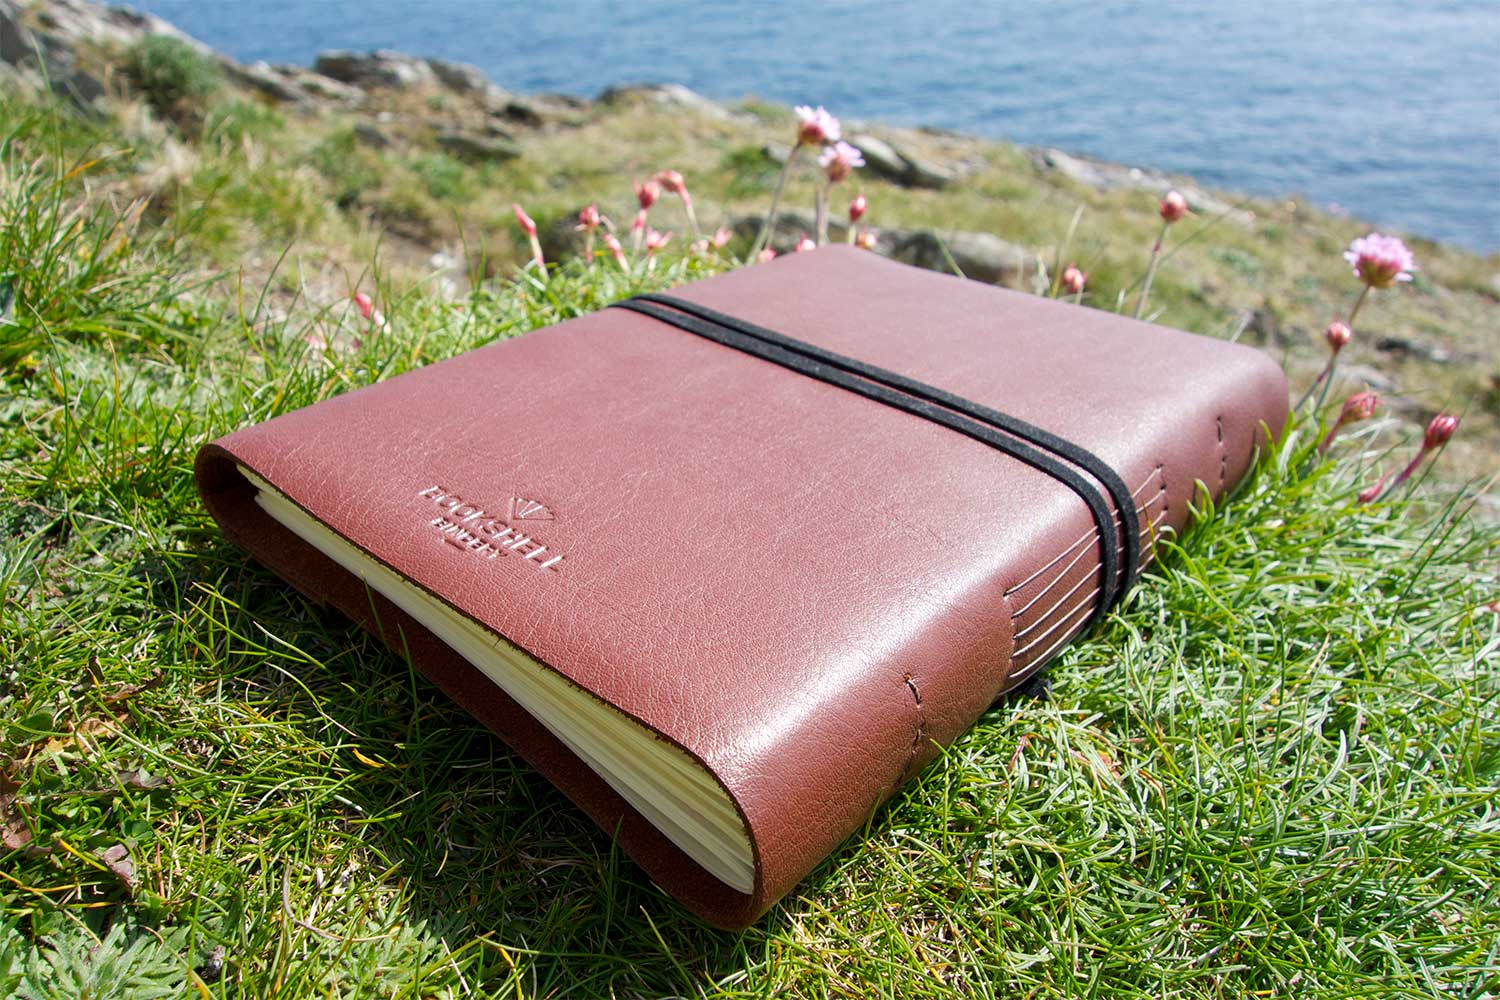 Men's journal in light brown leather from Bookshell bindery detail of the back cover